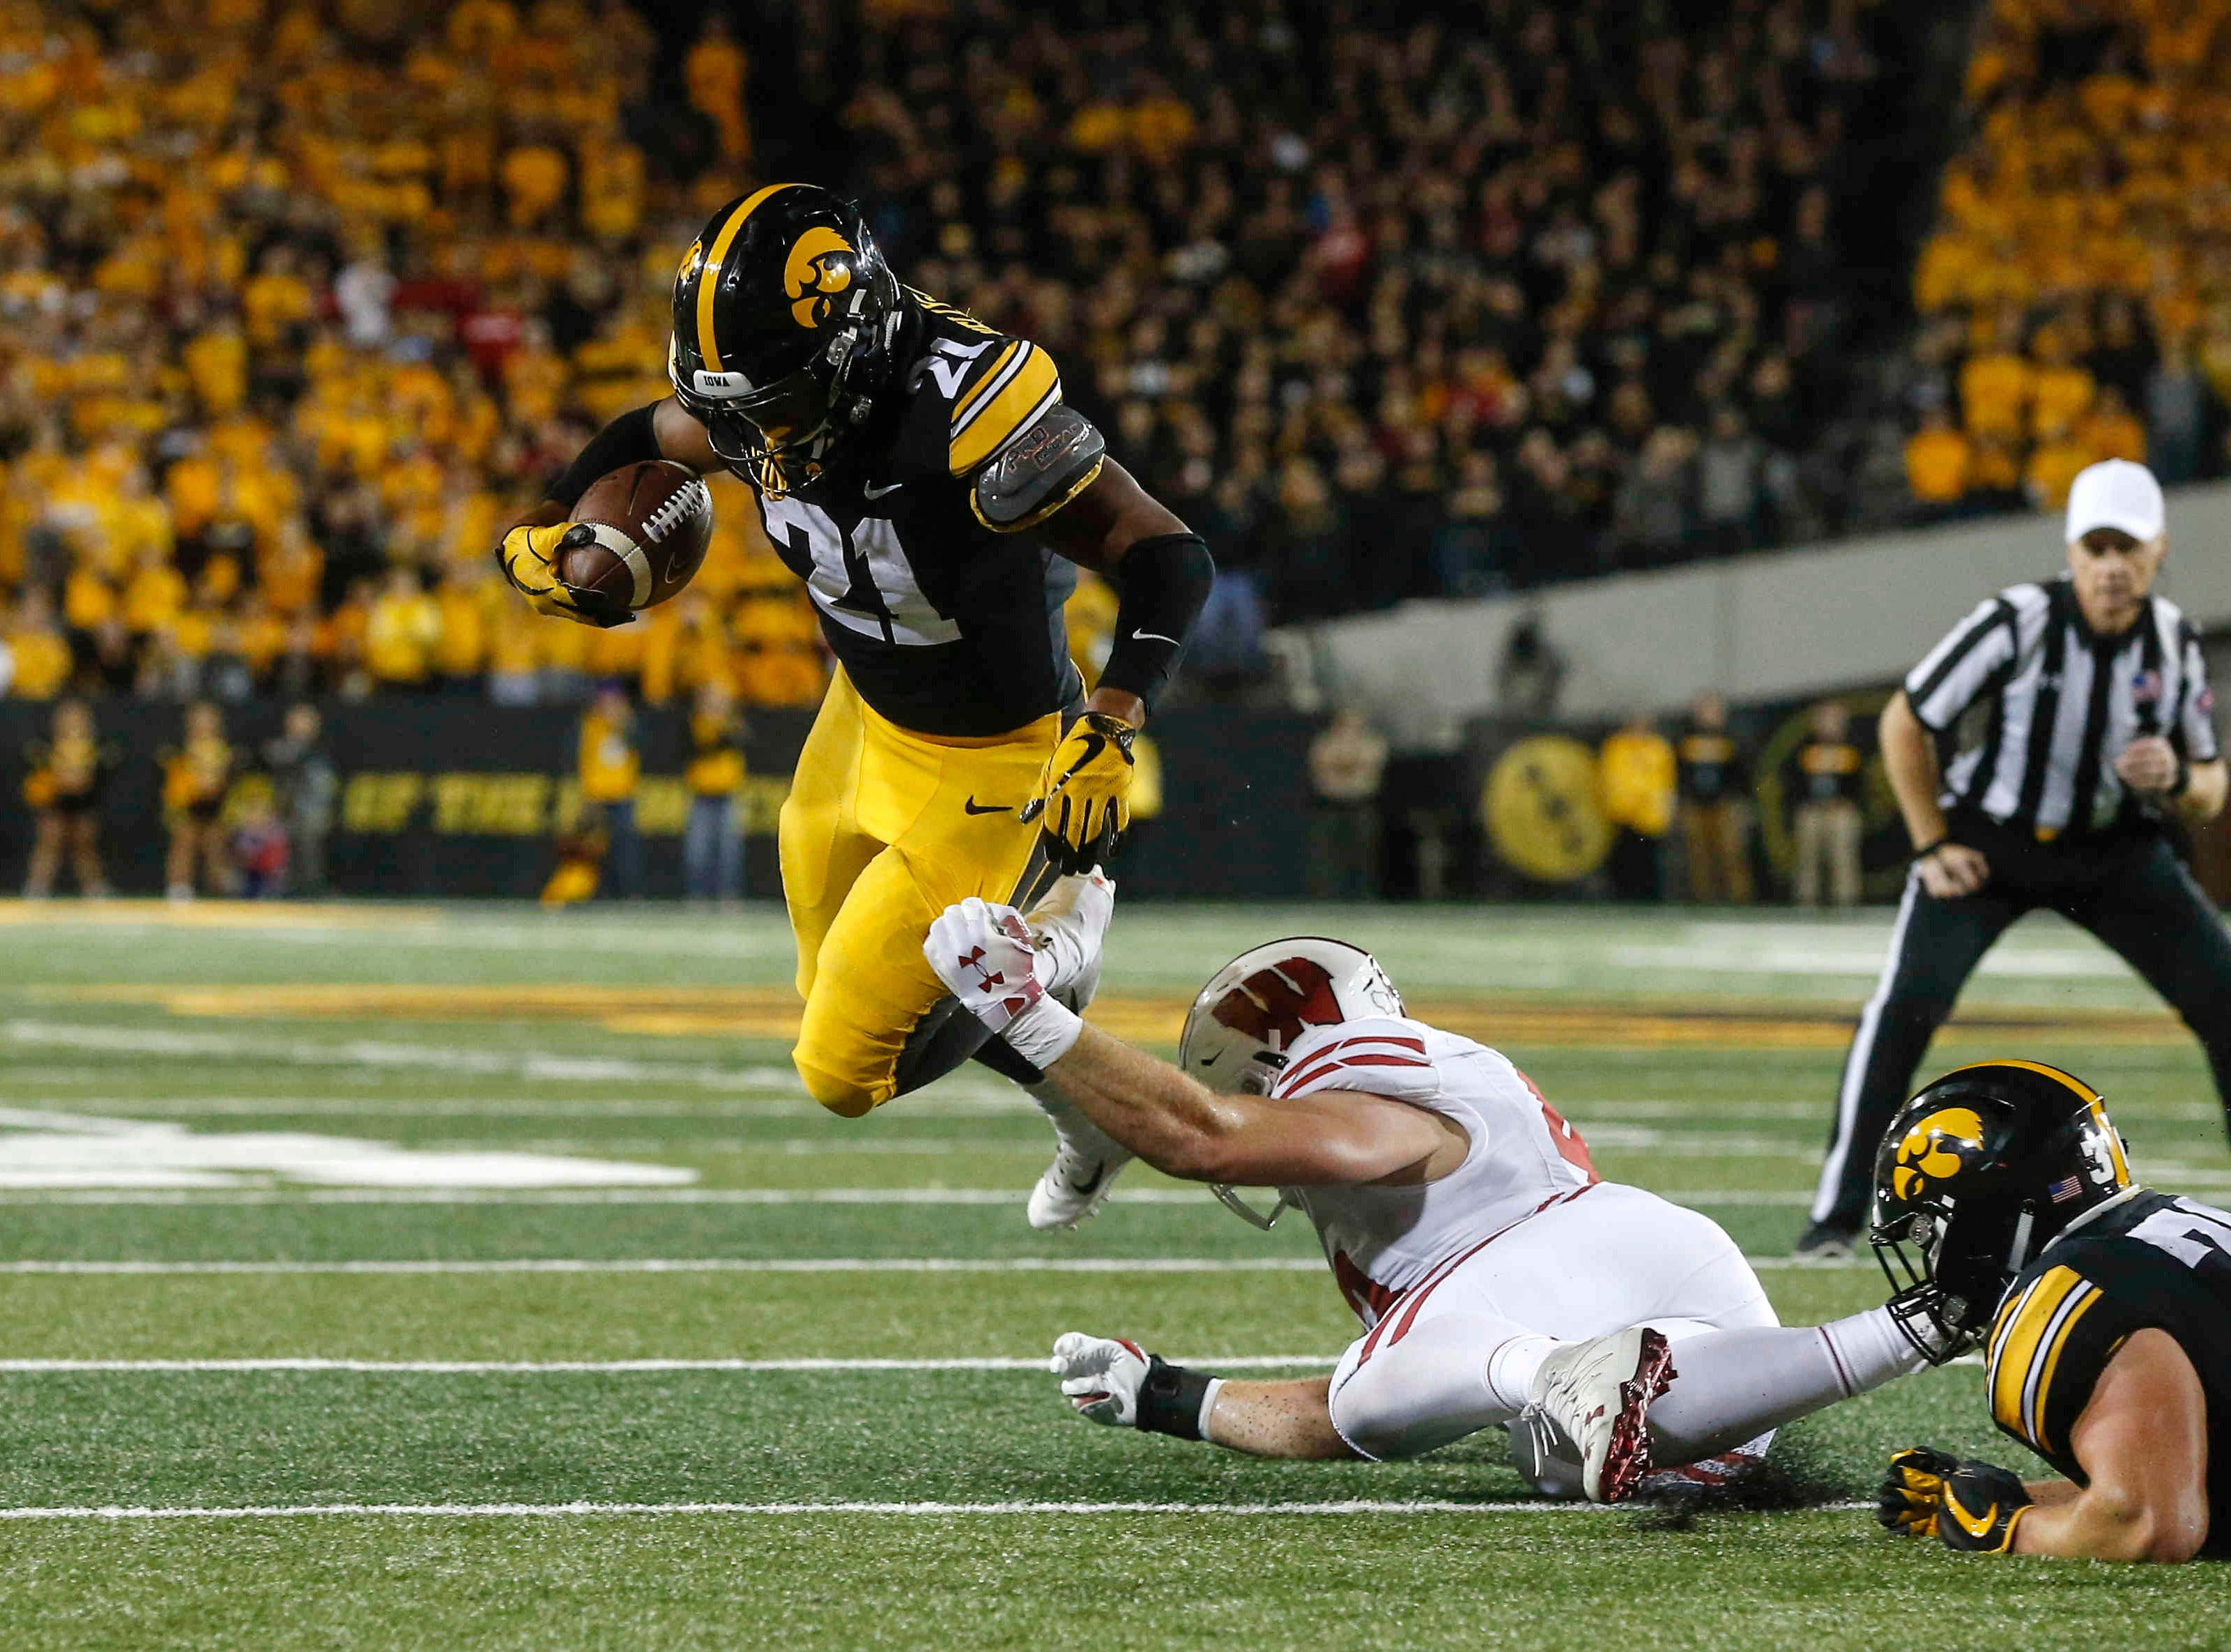 Iowa running back Ivory Kelly-Martin is tripped up by a Wisconsin linebacker on Saturday, Sept. 22, 2018, at Kinnick Stadium in Iowa City.